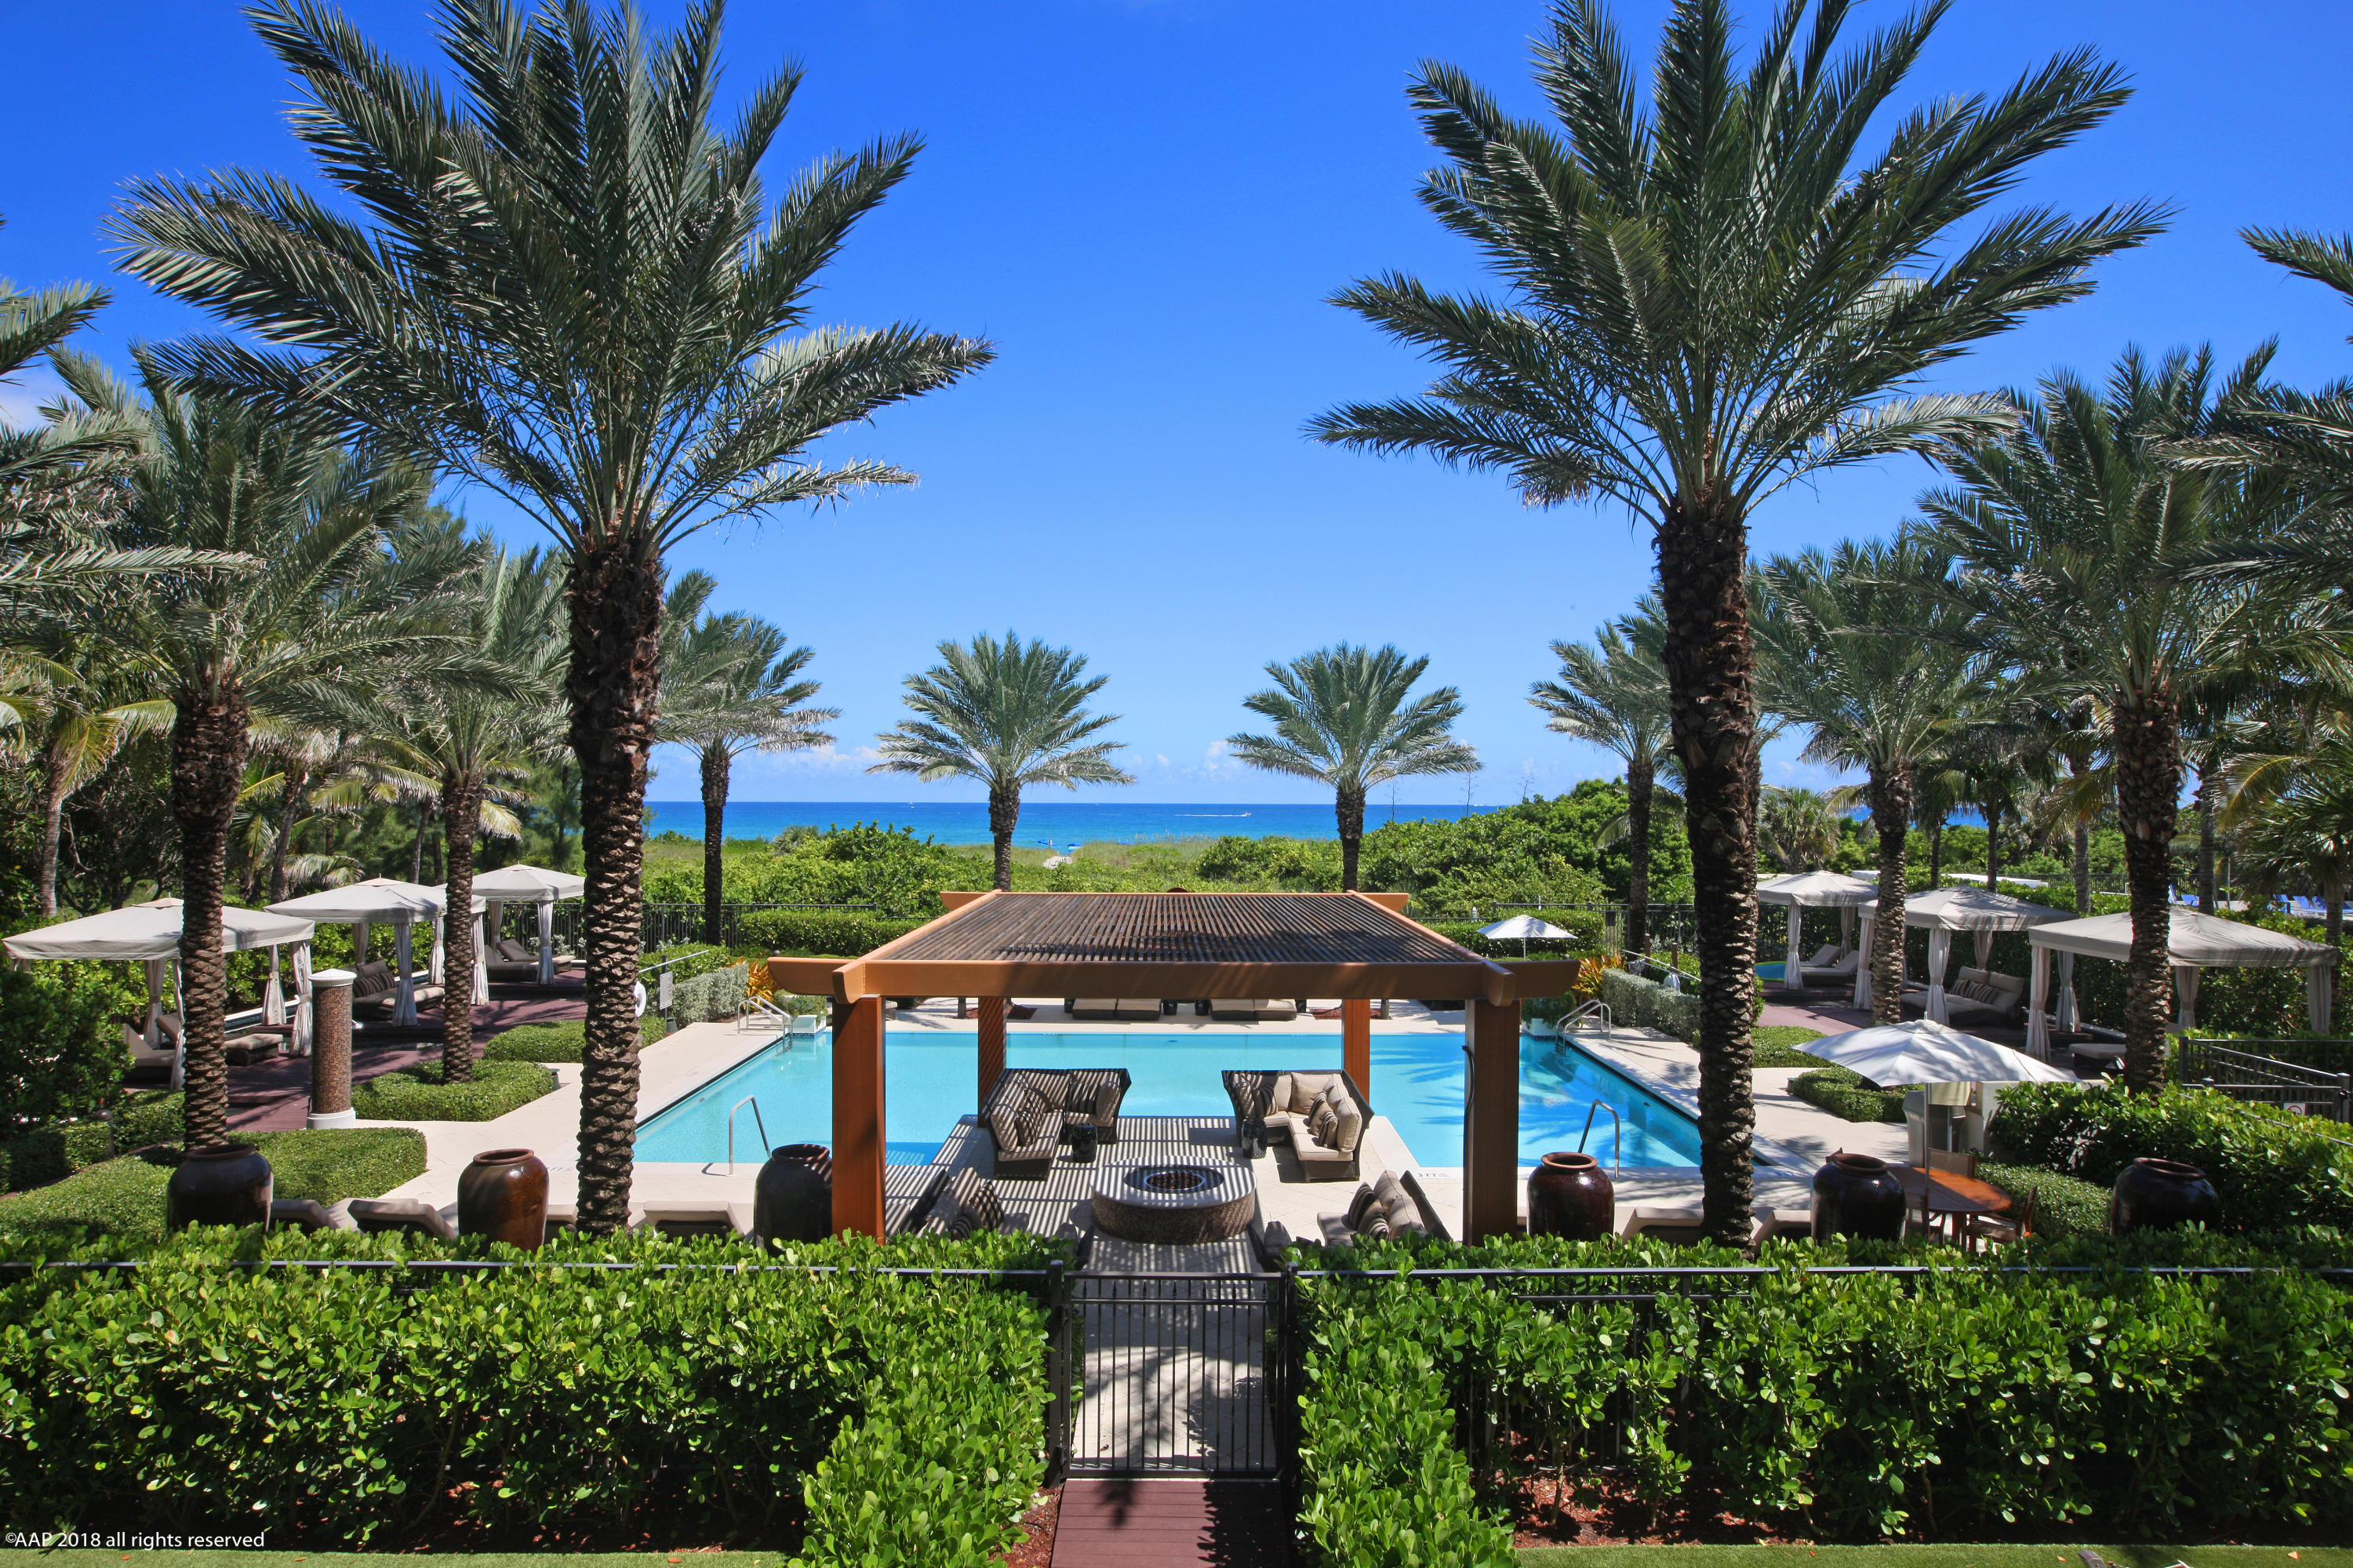 DOLCEVITA PALM BEACH SHORES